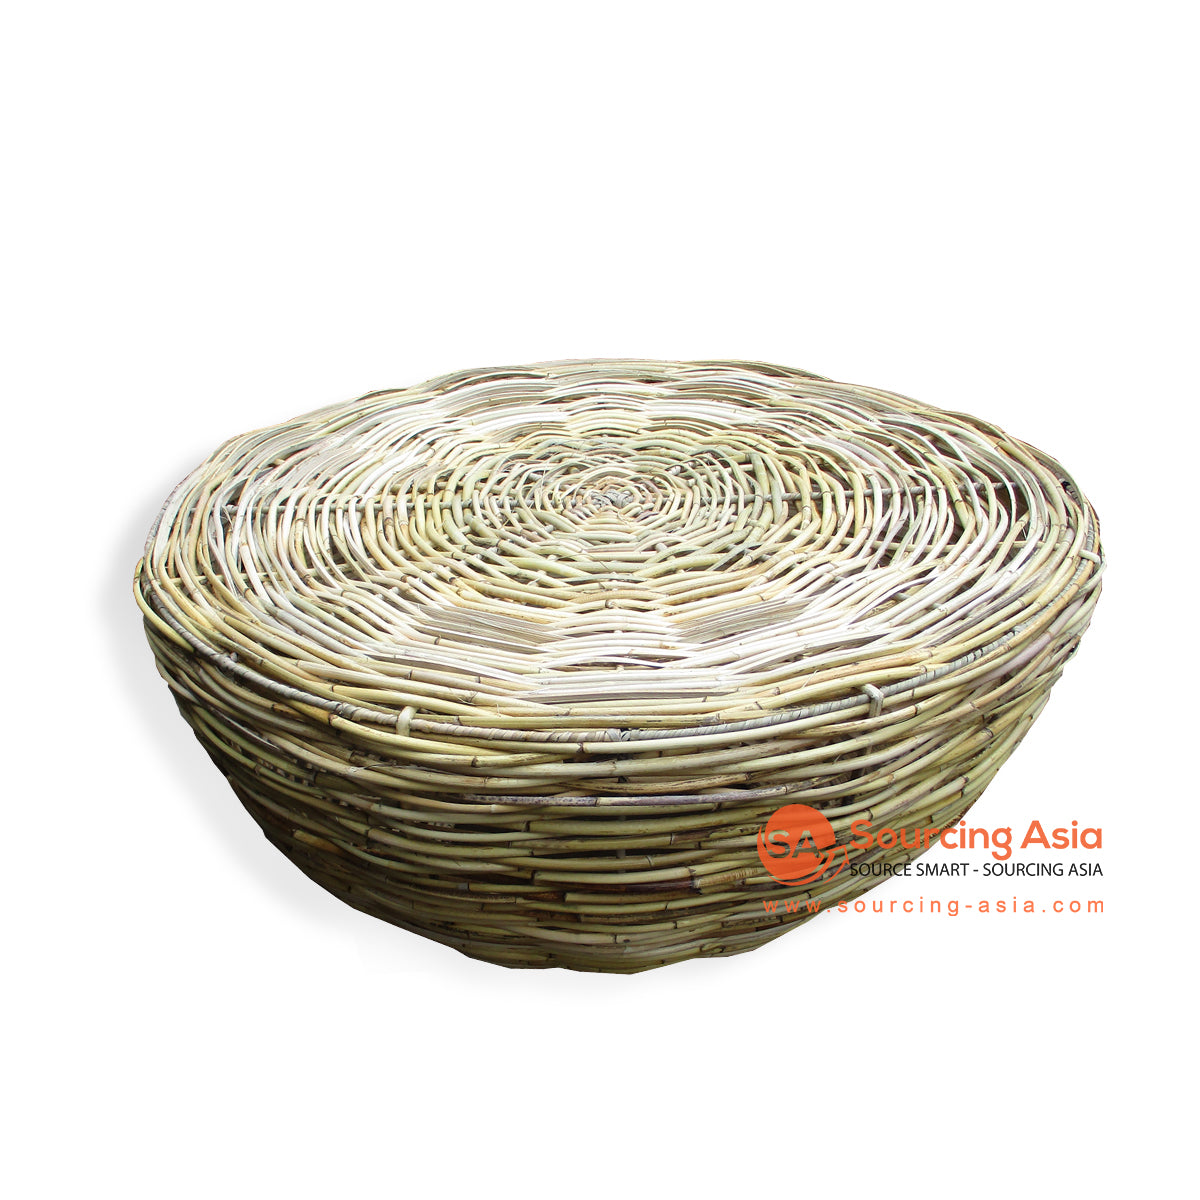 YBL059 ROUND KUBU RATTAN COFFEE TABLE